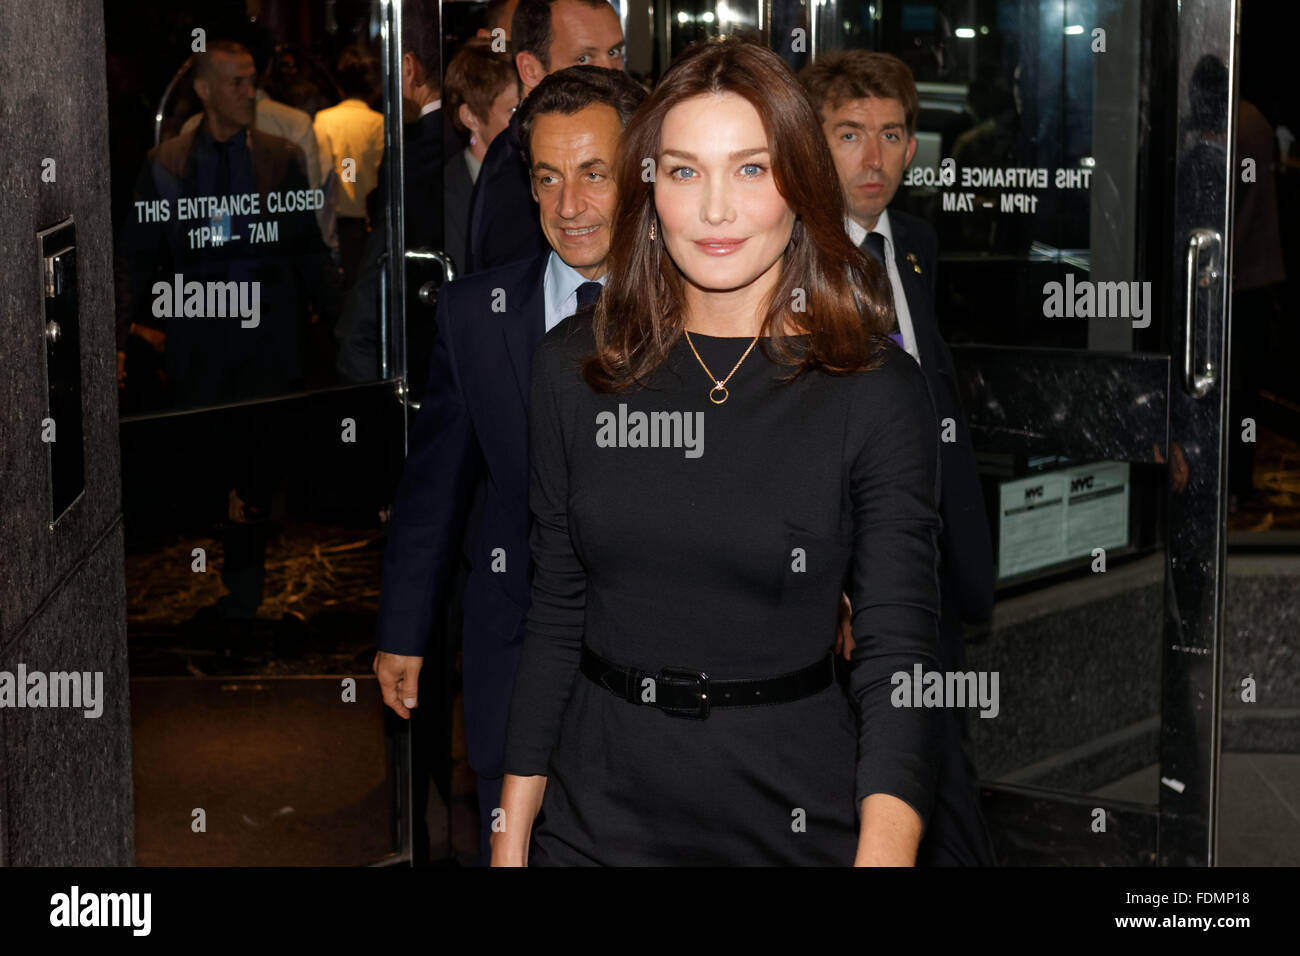 Ex Presidente Francese Nicolas Sarkozy E La Moglie Carla Bruni In New York City Foto Di Trevor Collens Foto Stock Alamy